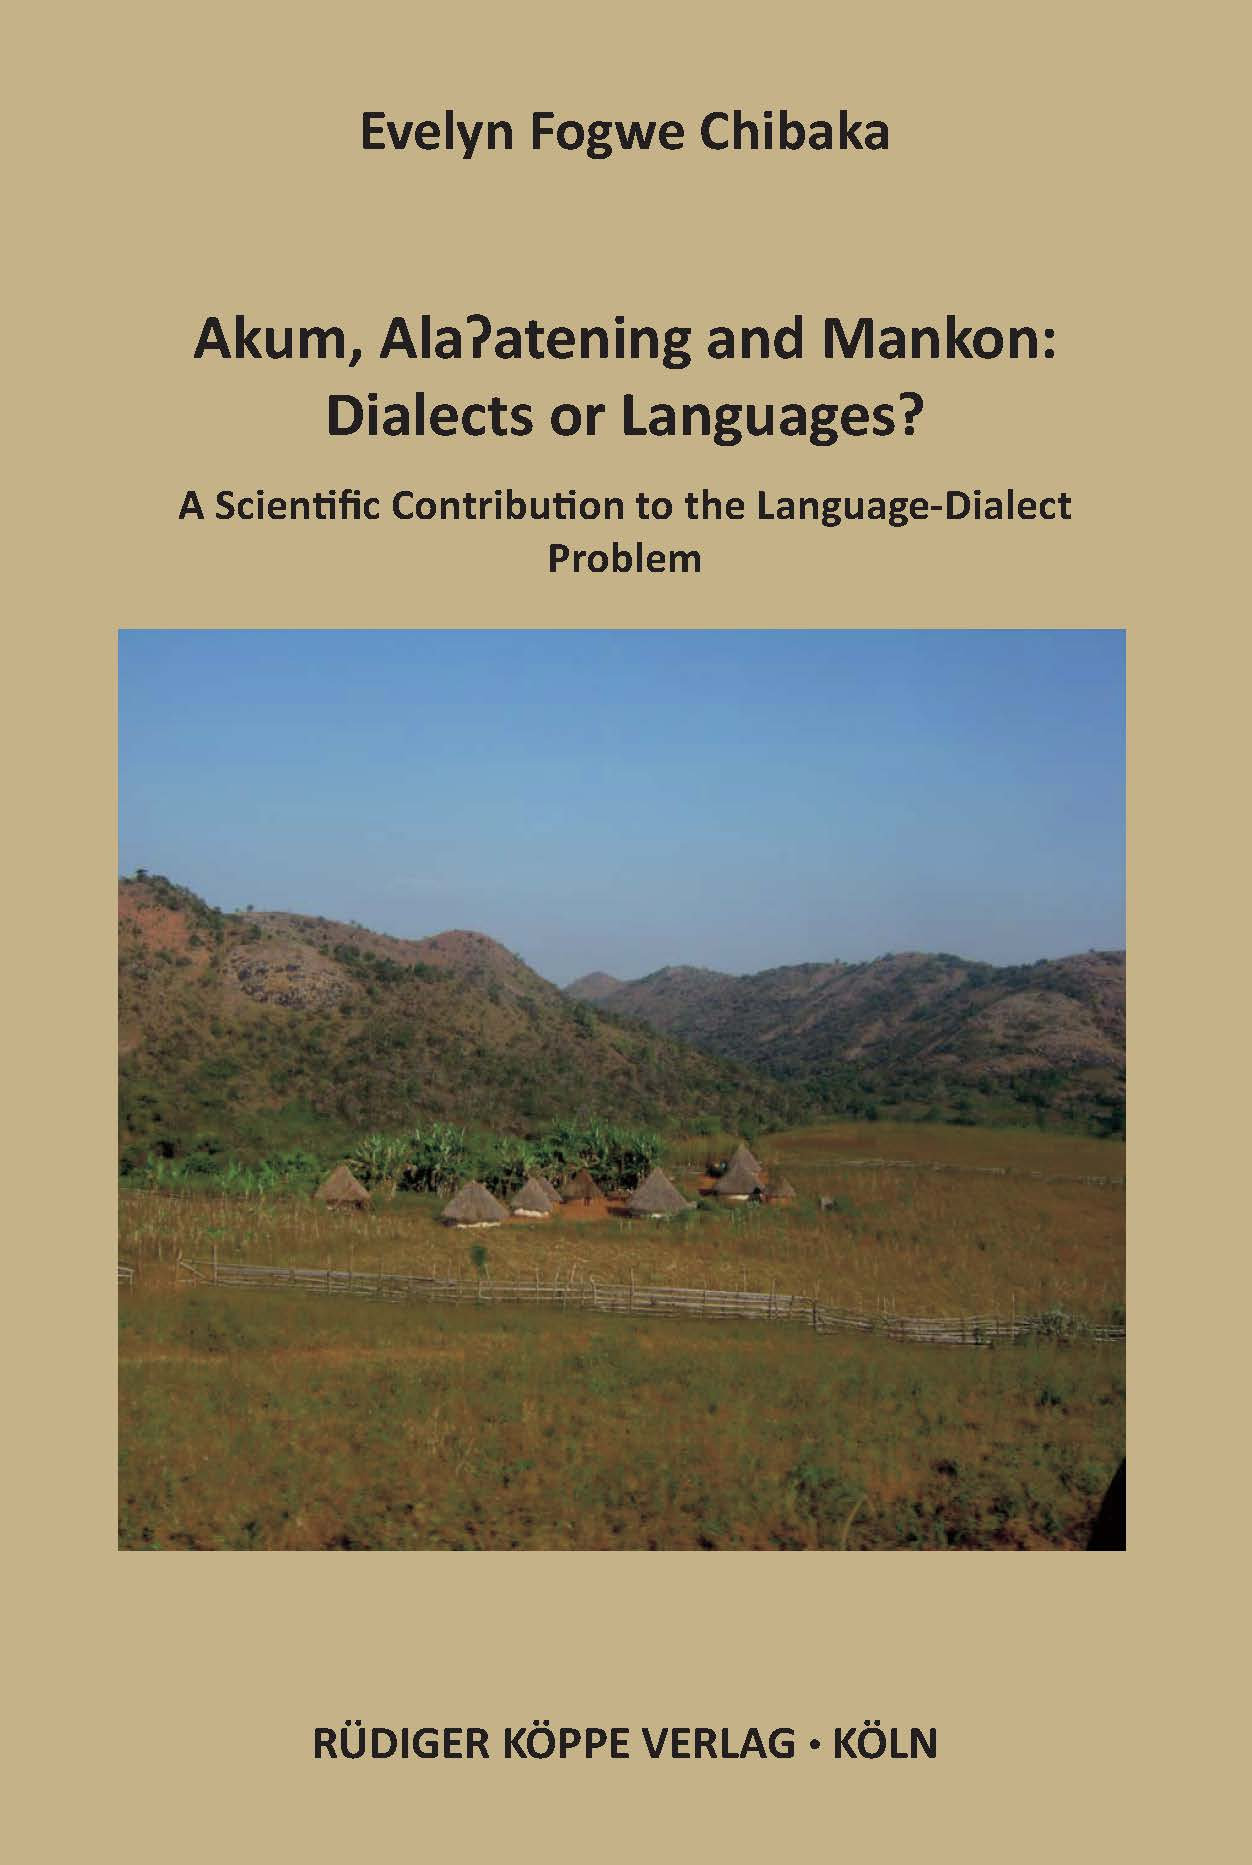 Akum, Ala'atening and Mankon: Dialects or Languages?